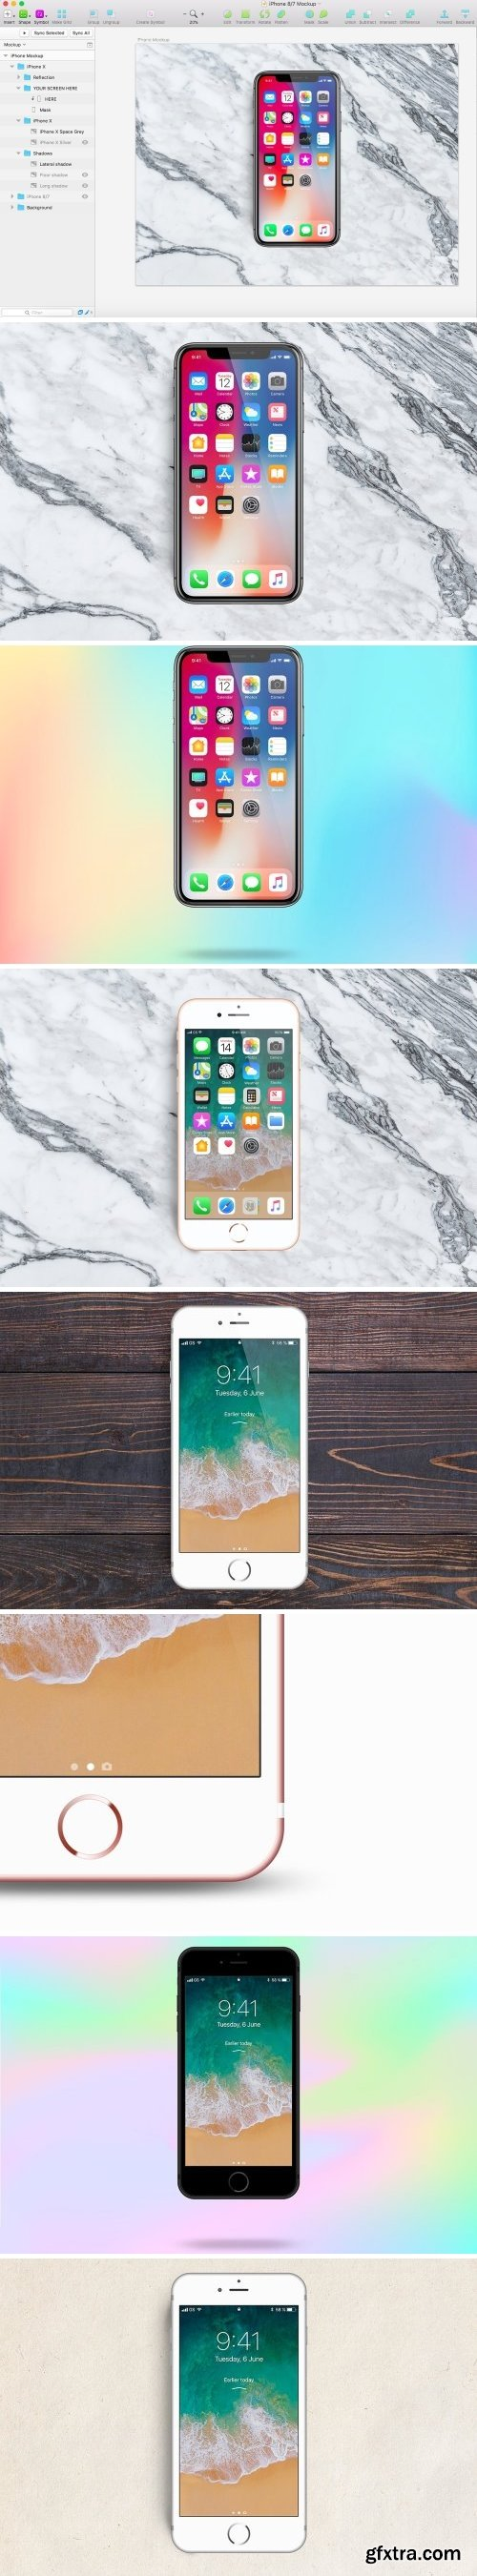 CM - iPhone X, 8 and 7 Mockup • Sketch 1611410